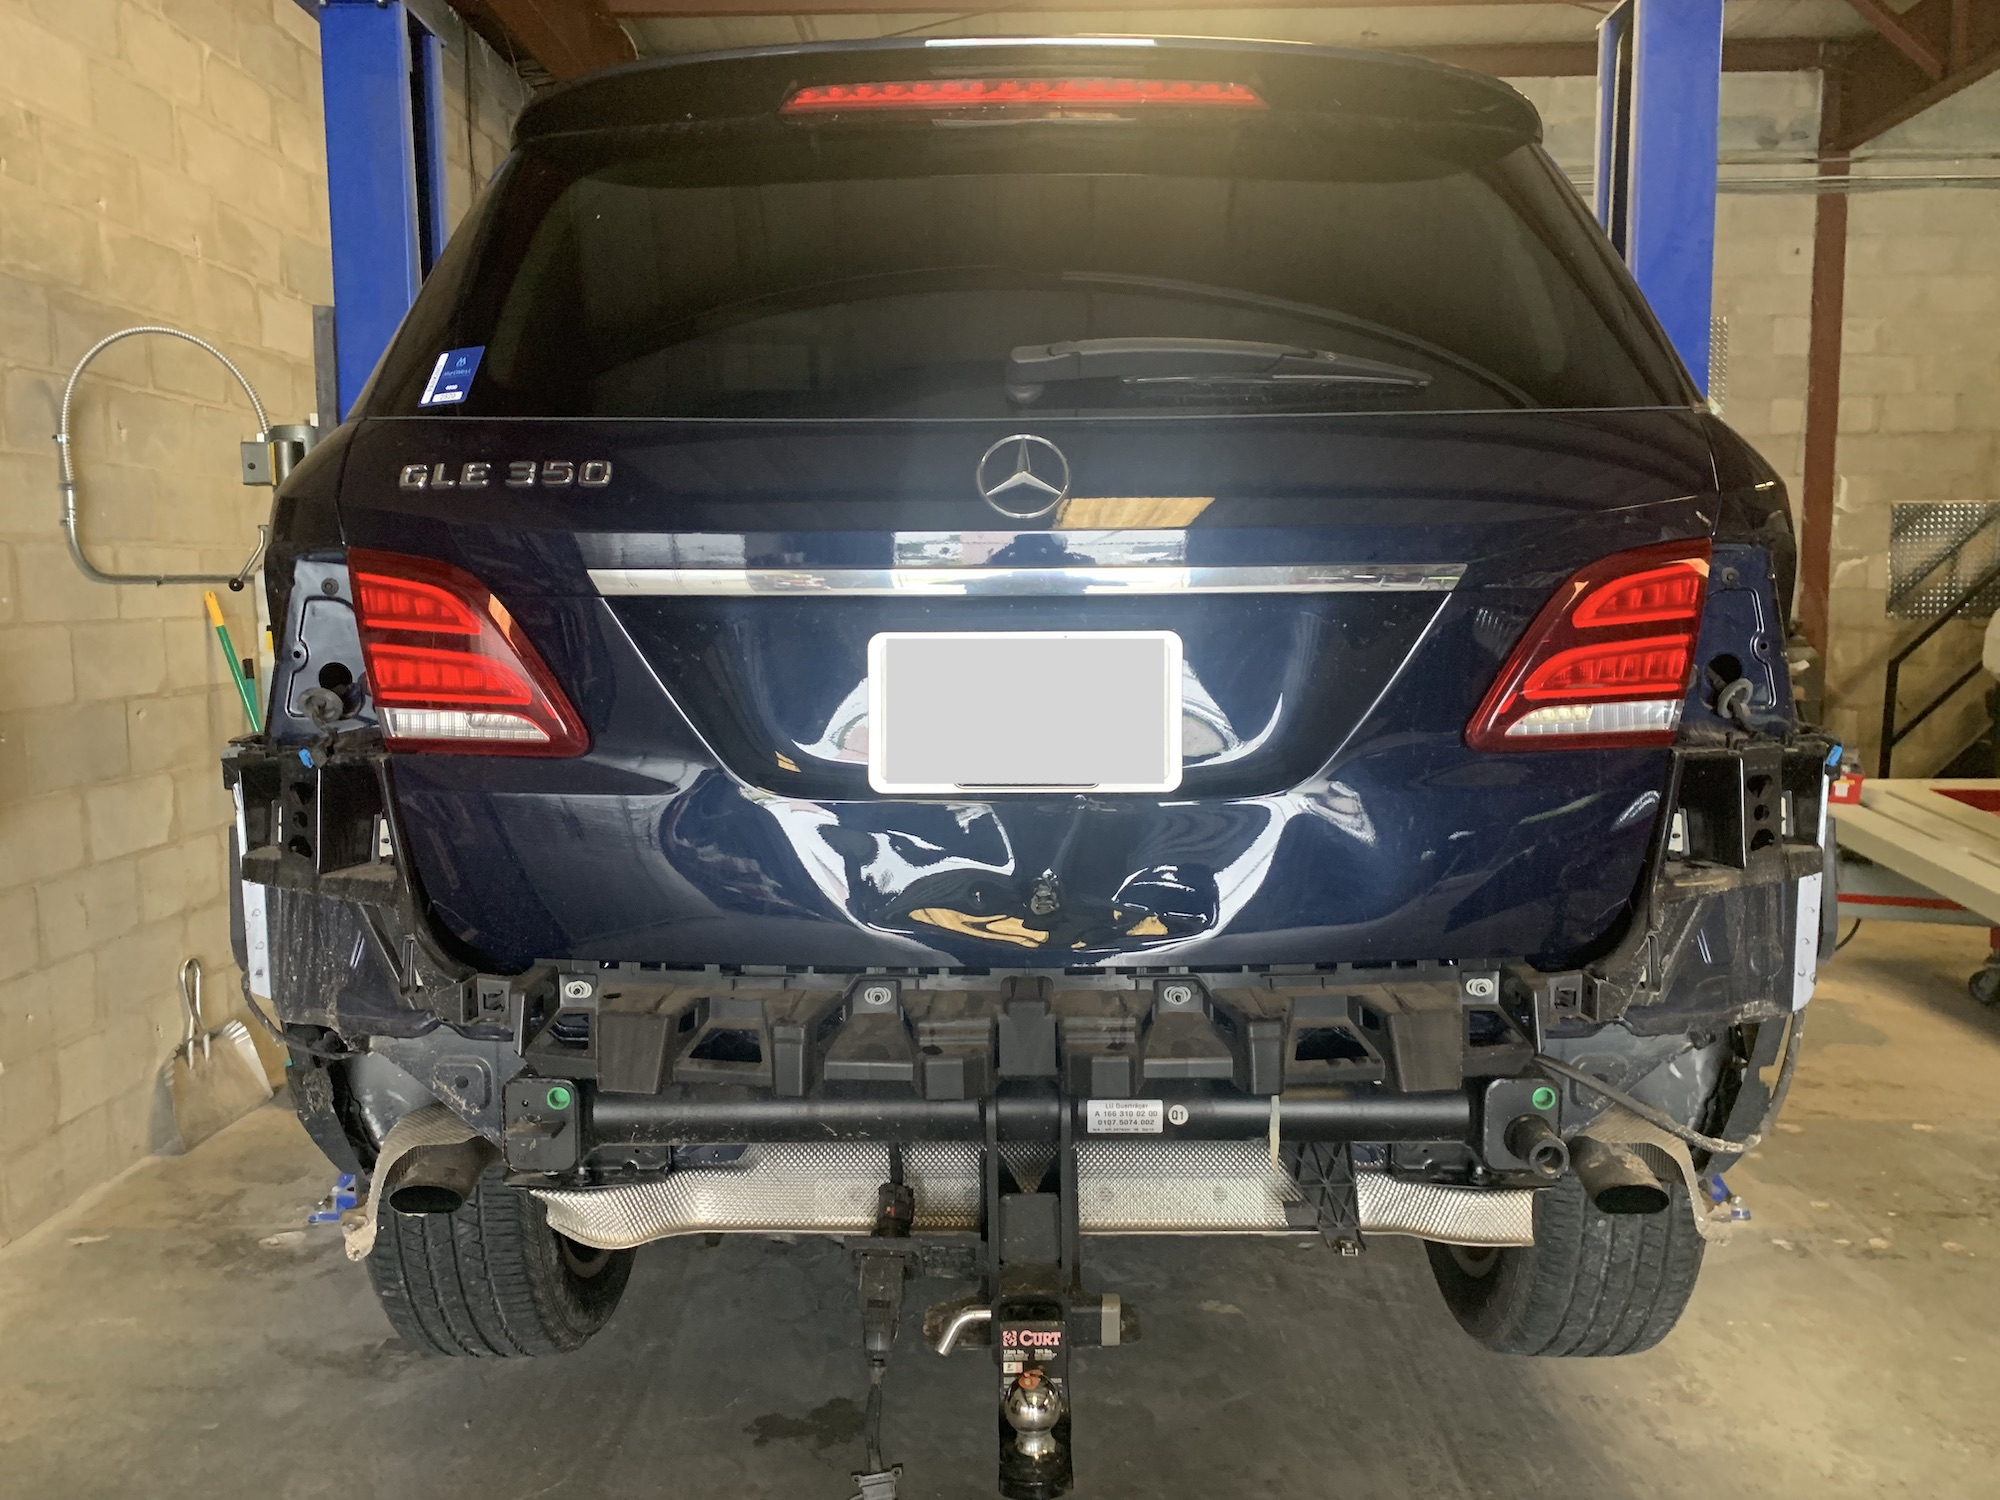 Outstanding auto body work! Quick estimate turn around! Impeccably tidy shop! Exceptional customer care & service! Remember you can choose your auto body shop after an accident, you don't have to go with your insurances choice. Make the best choice, Empire Collision & Towing! - Kelly Jenkins